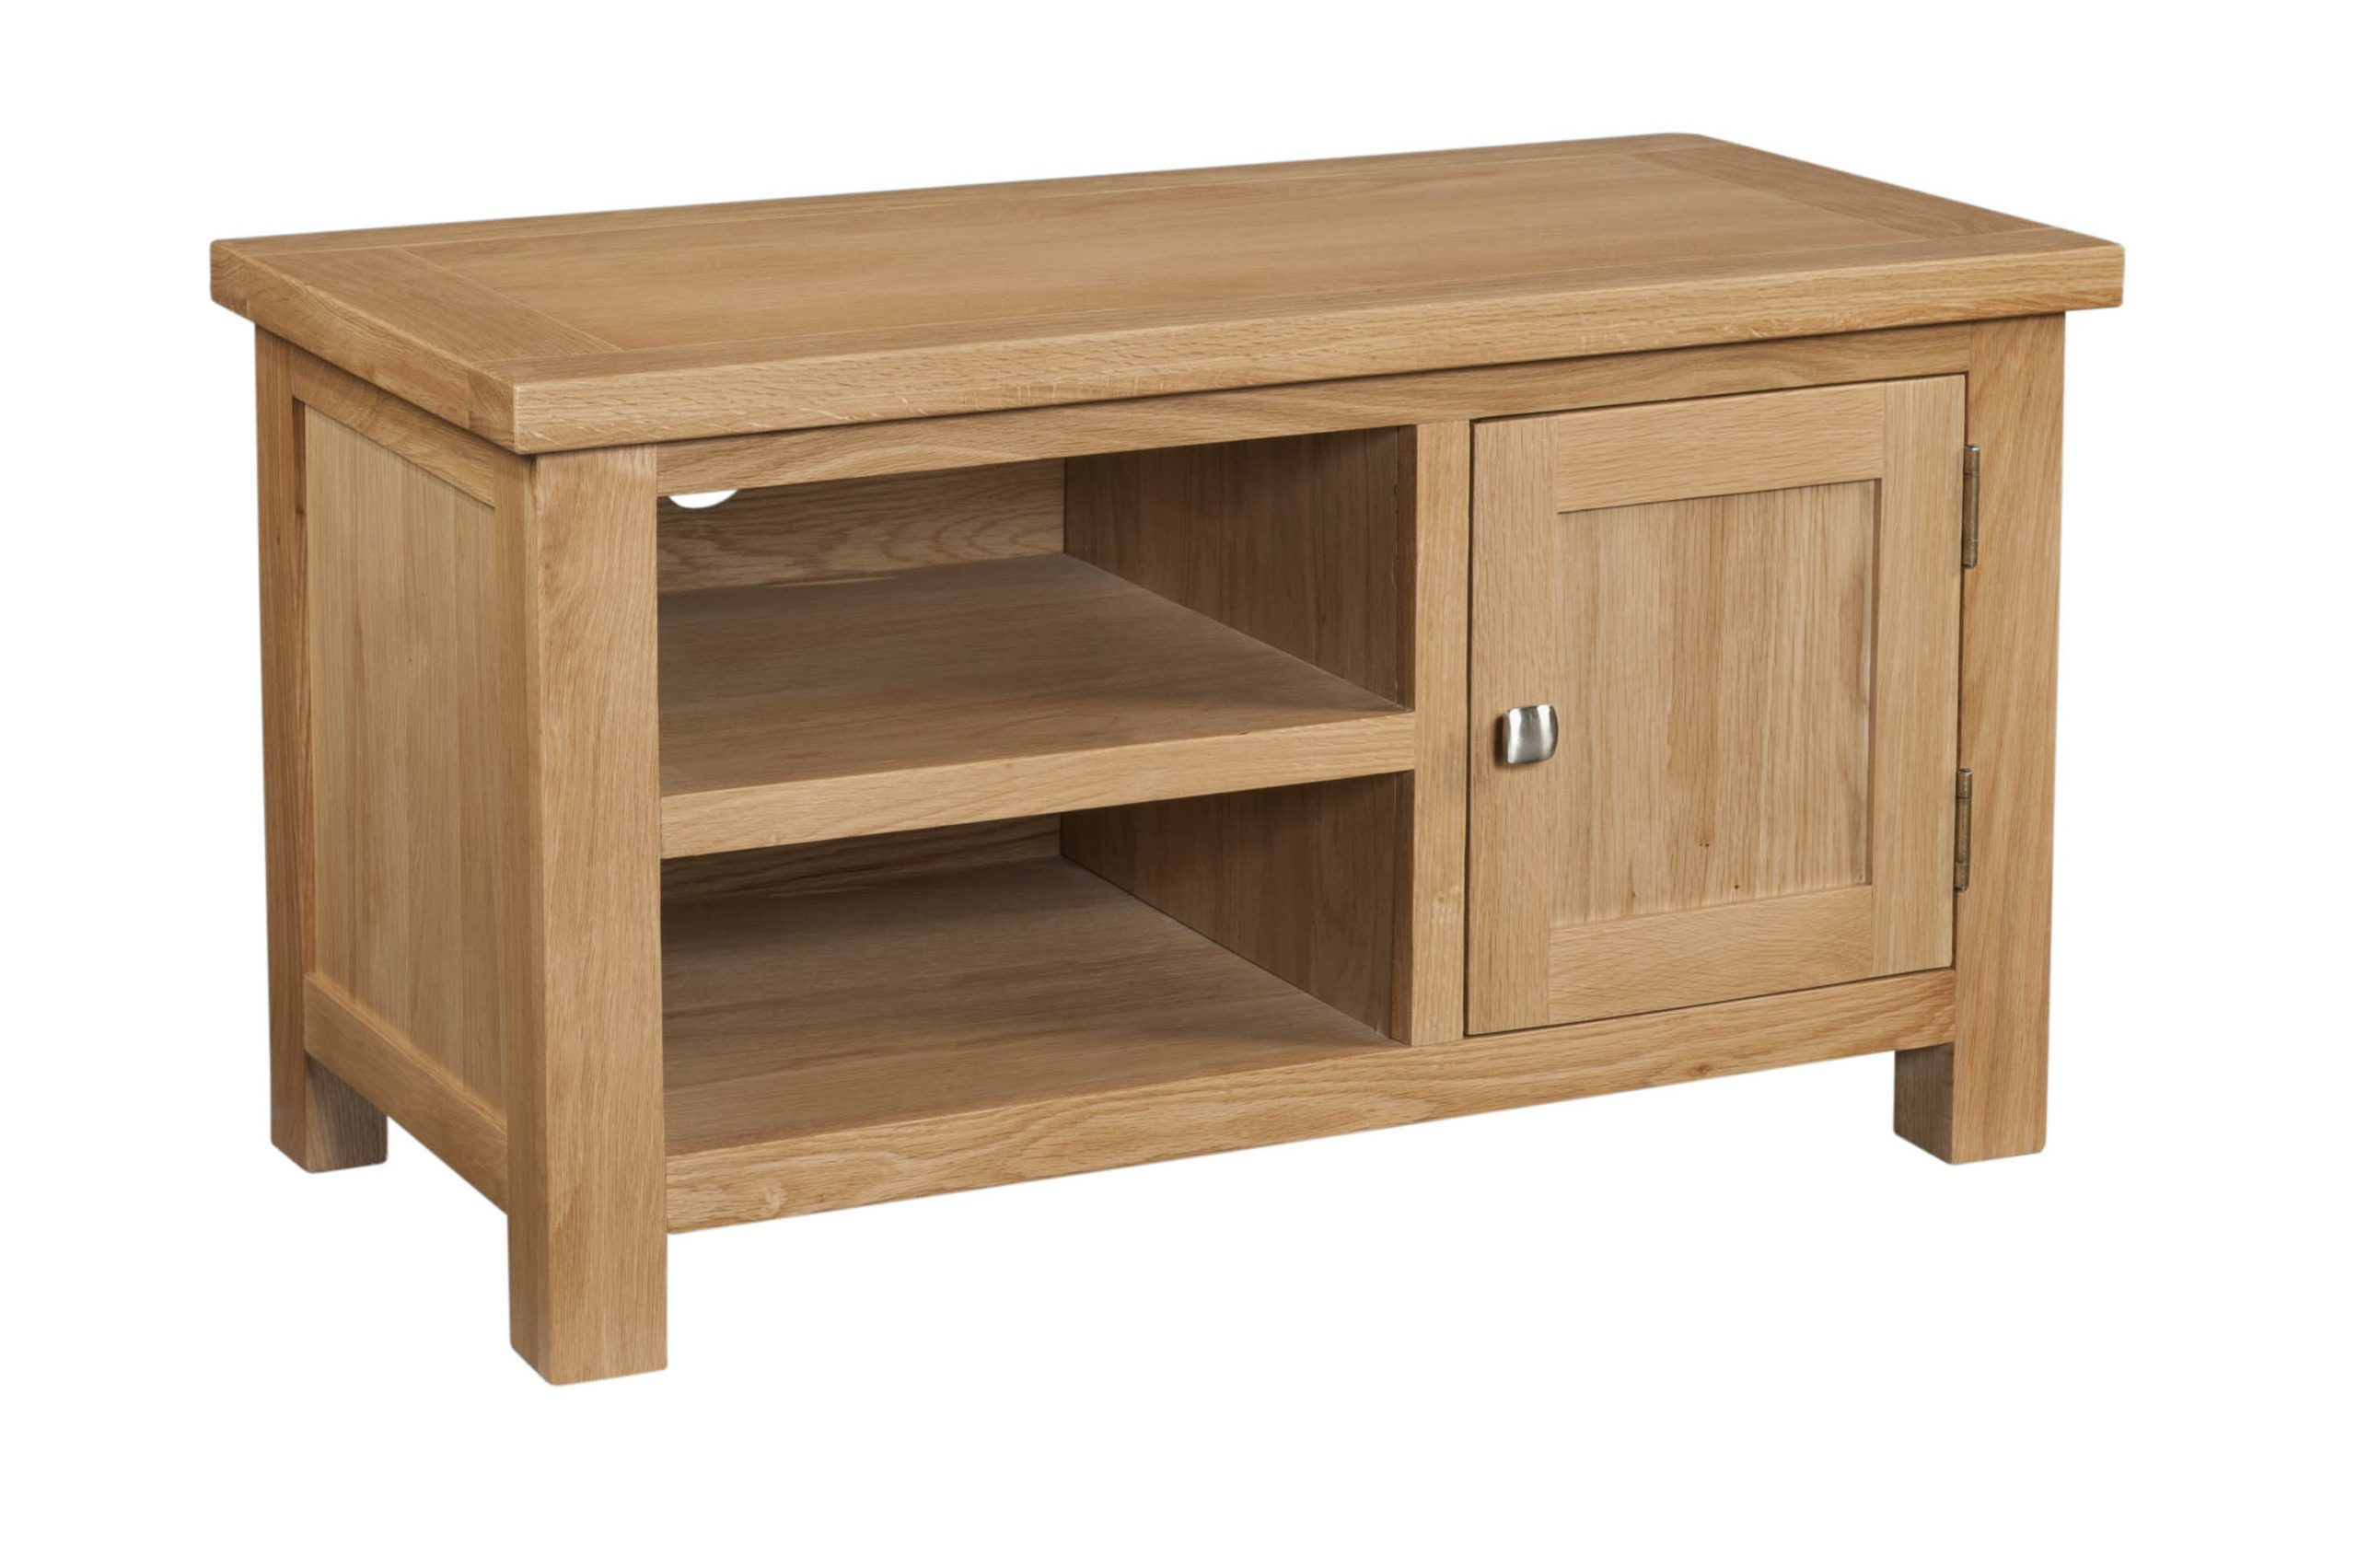 dorset oak 1 door tv unit shelf at the side and silver knob